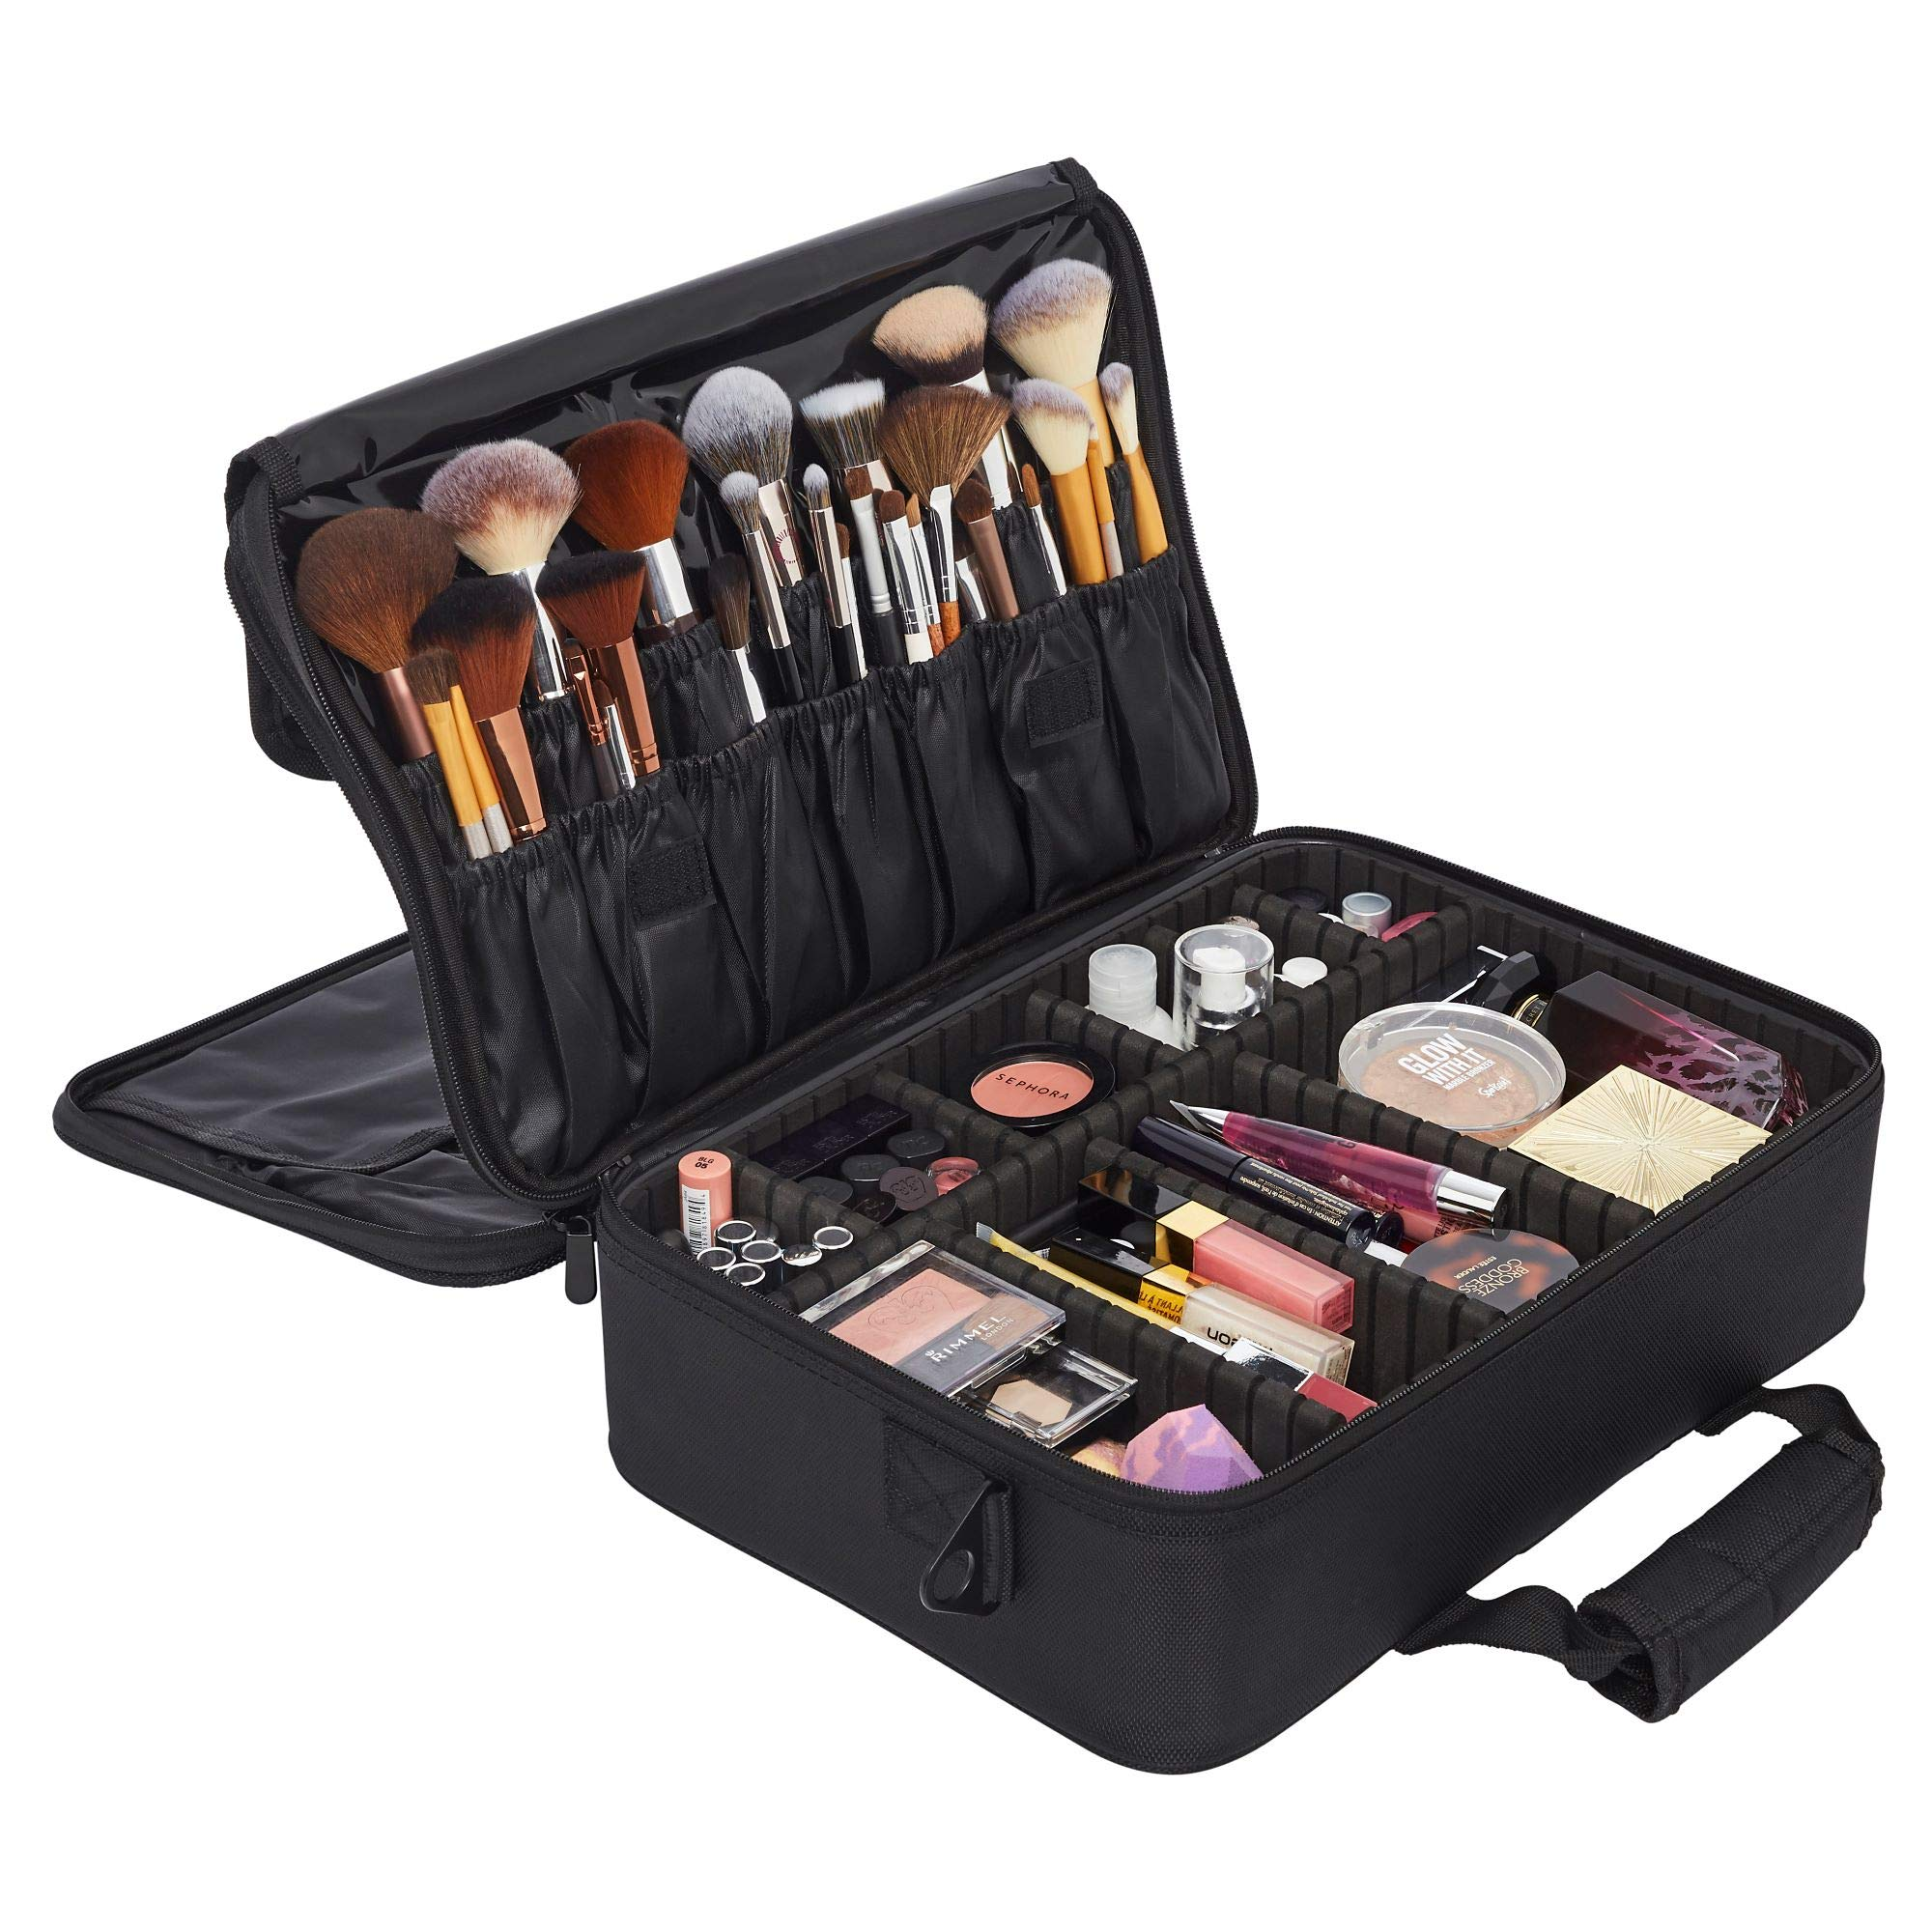 Ballage Large Travel Makeup Bag (3 Layer) with Adjustable Dividers, Makeup Organizer Bag, Multipurpose Cosmetic Organizer, Overnight Pouch by Ballage